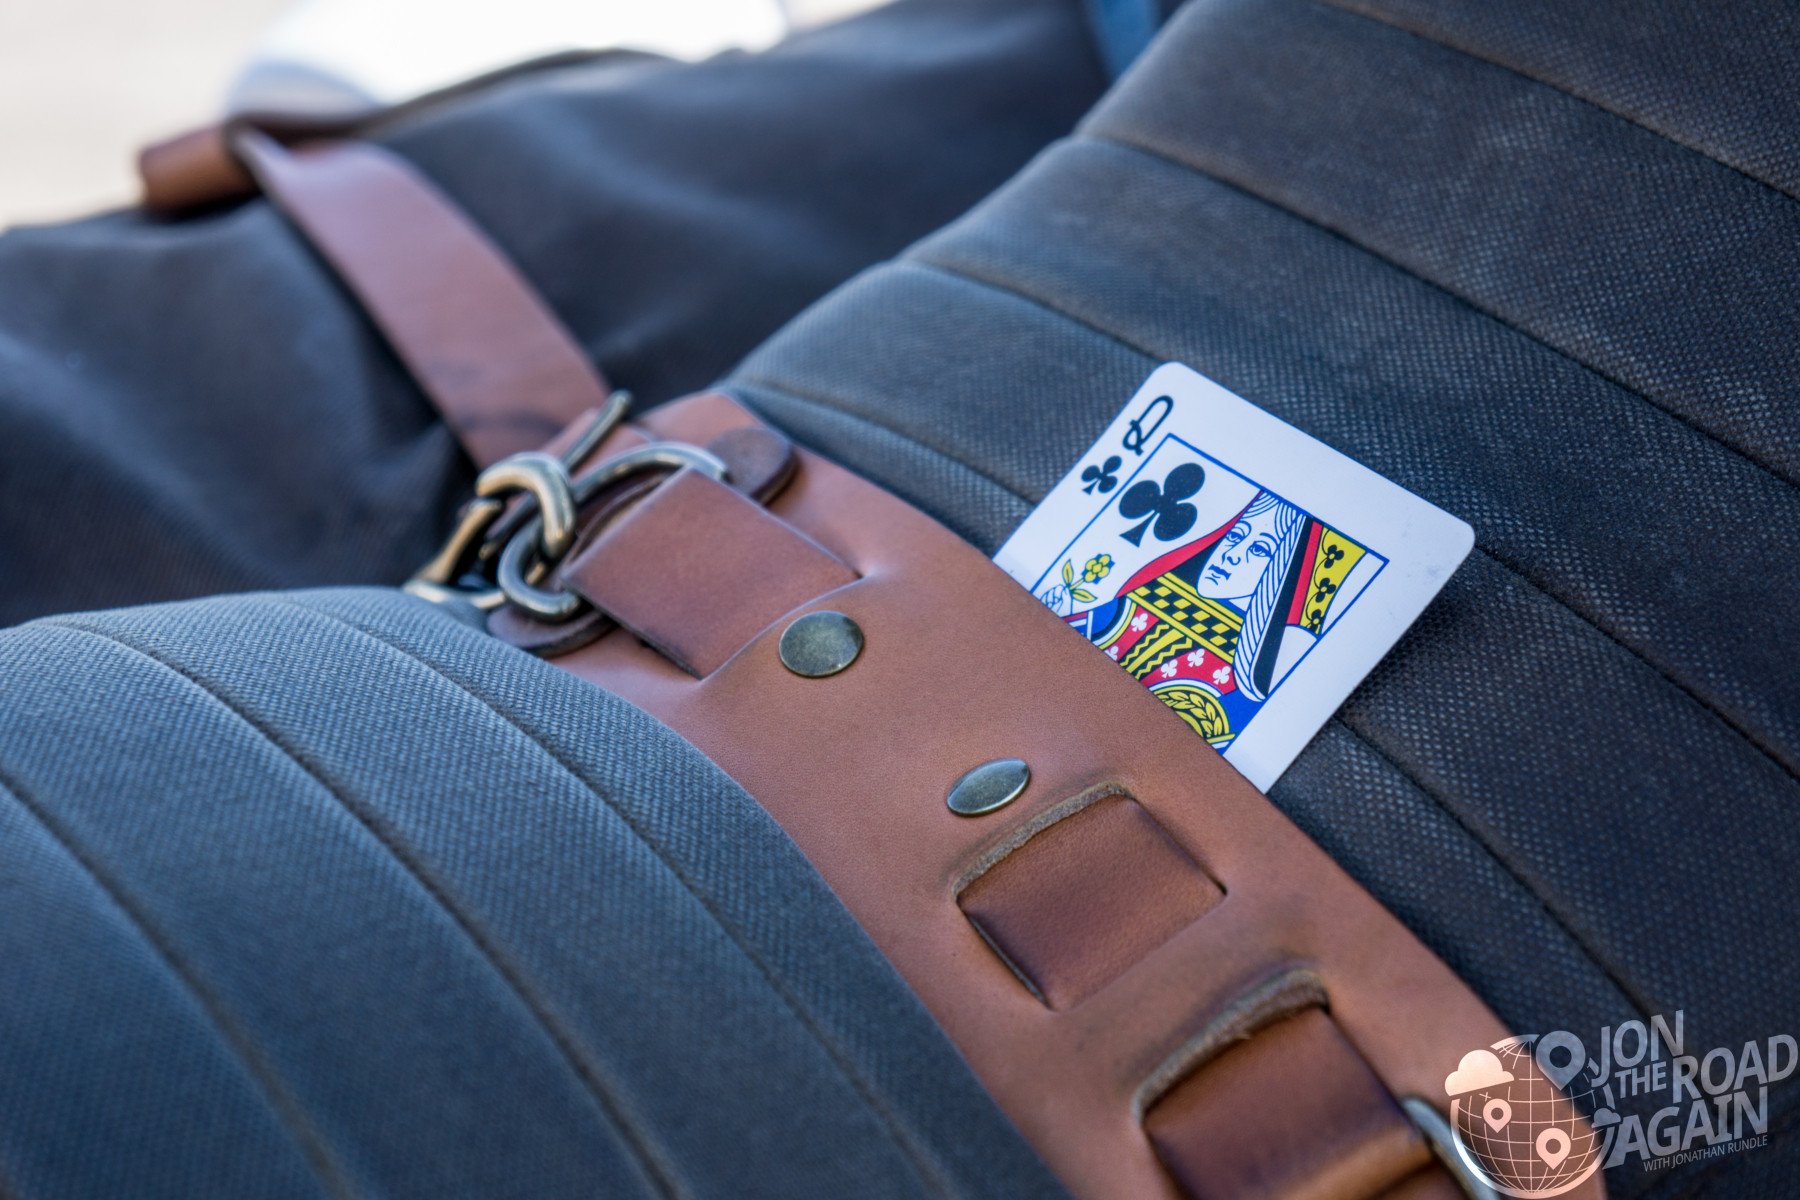 Queen card in motorcycle seat